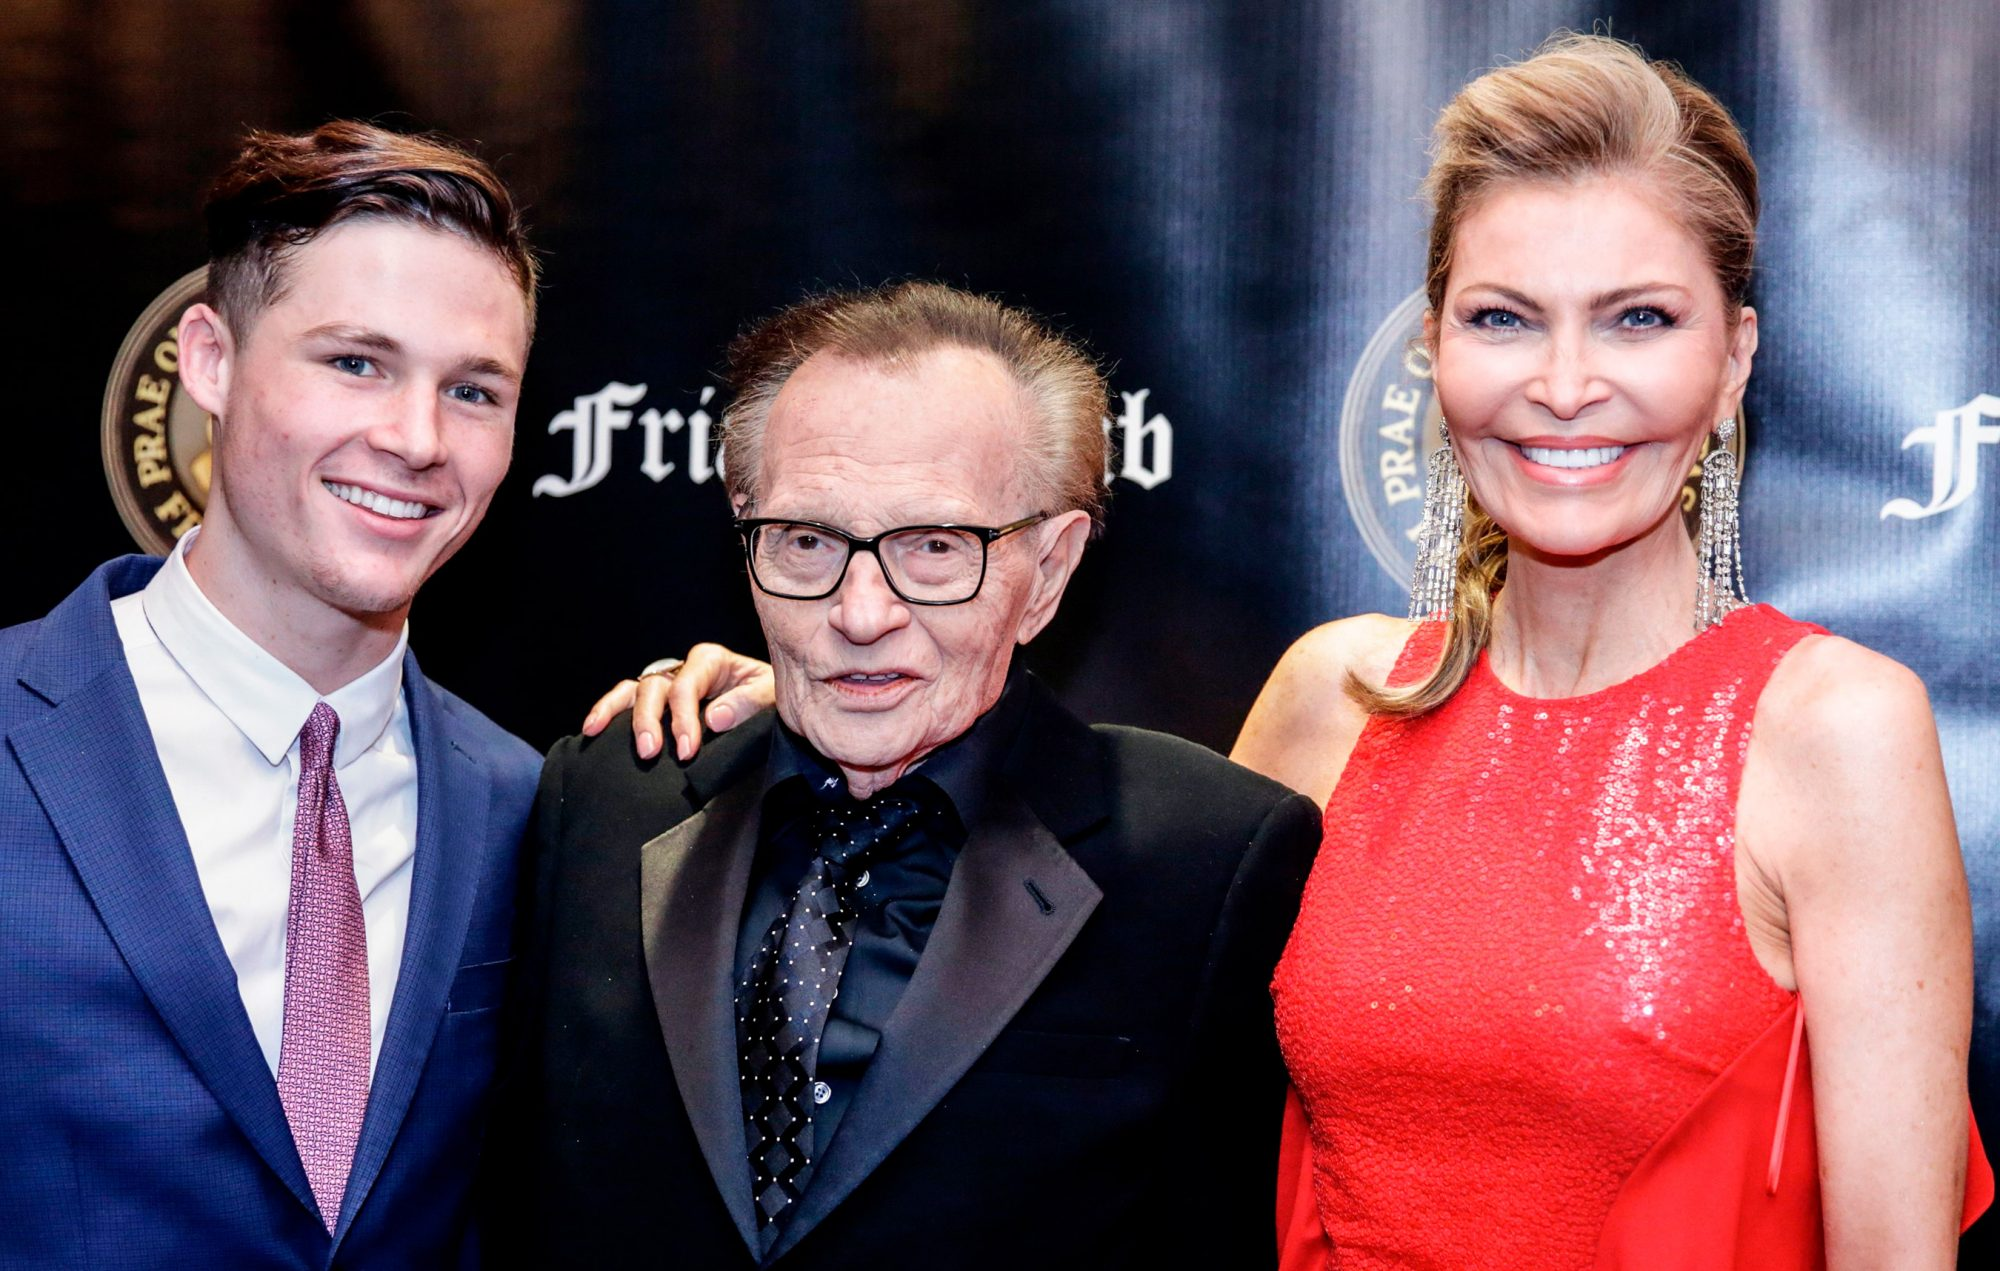 Larry King (C), his wife actress Shawn King and their son Cannon King